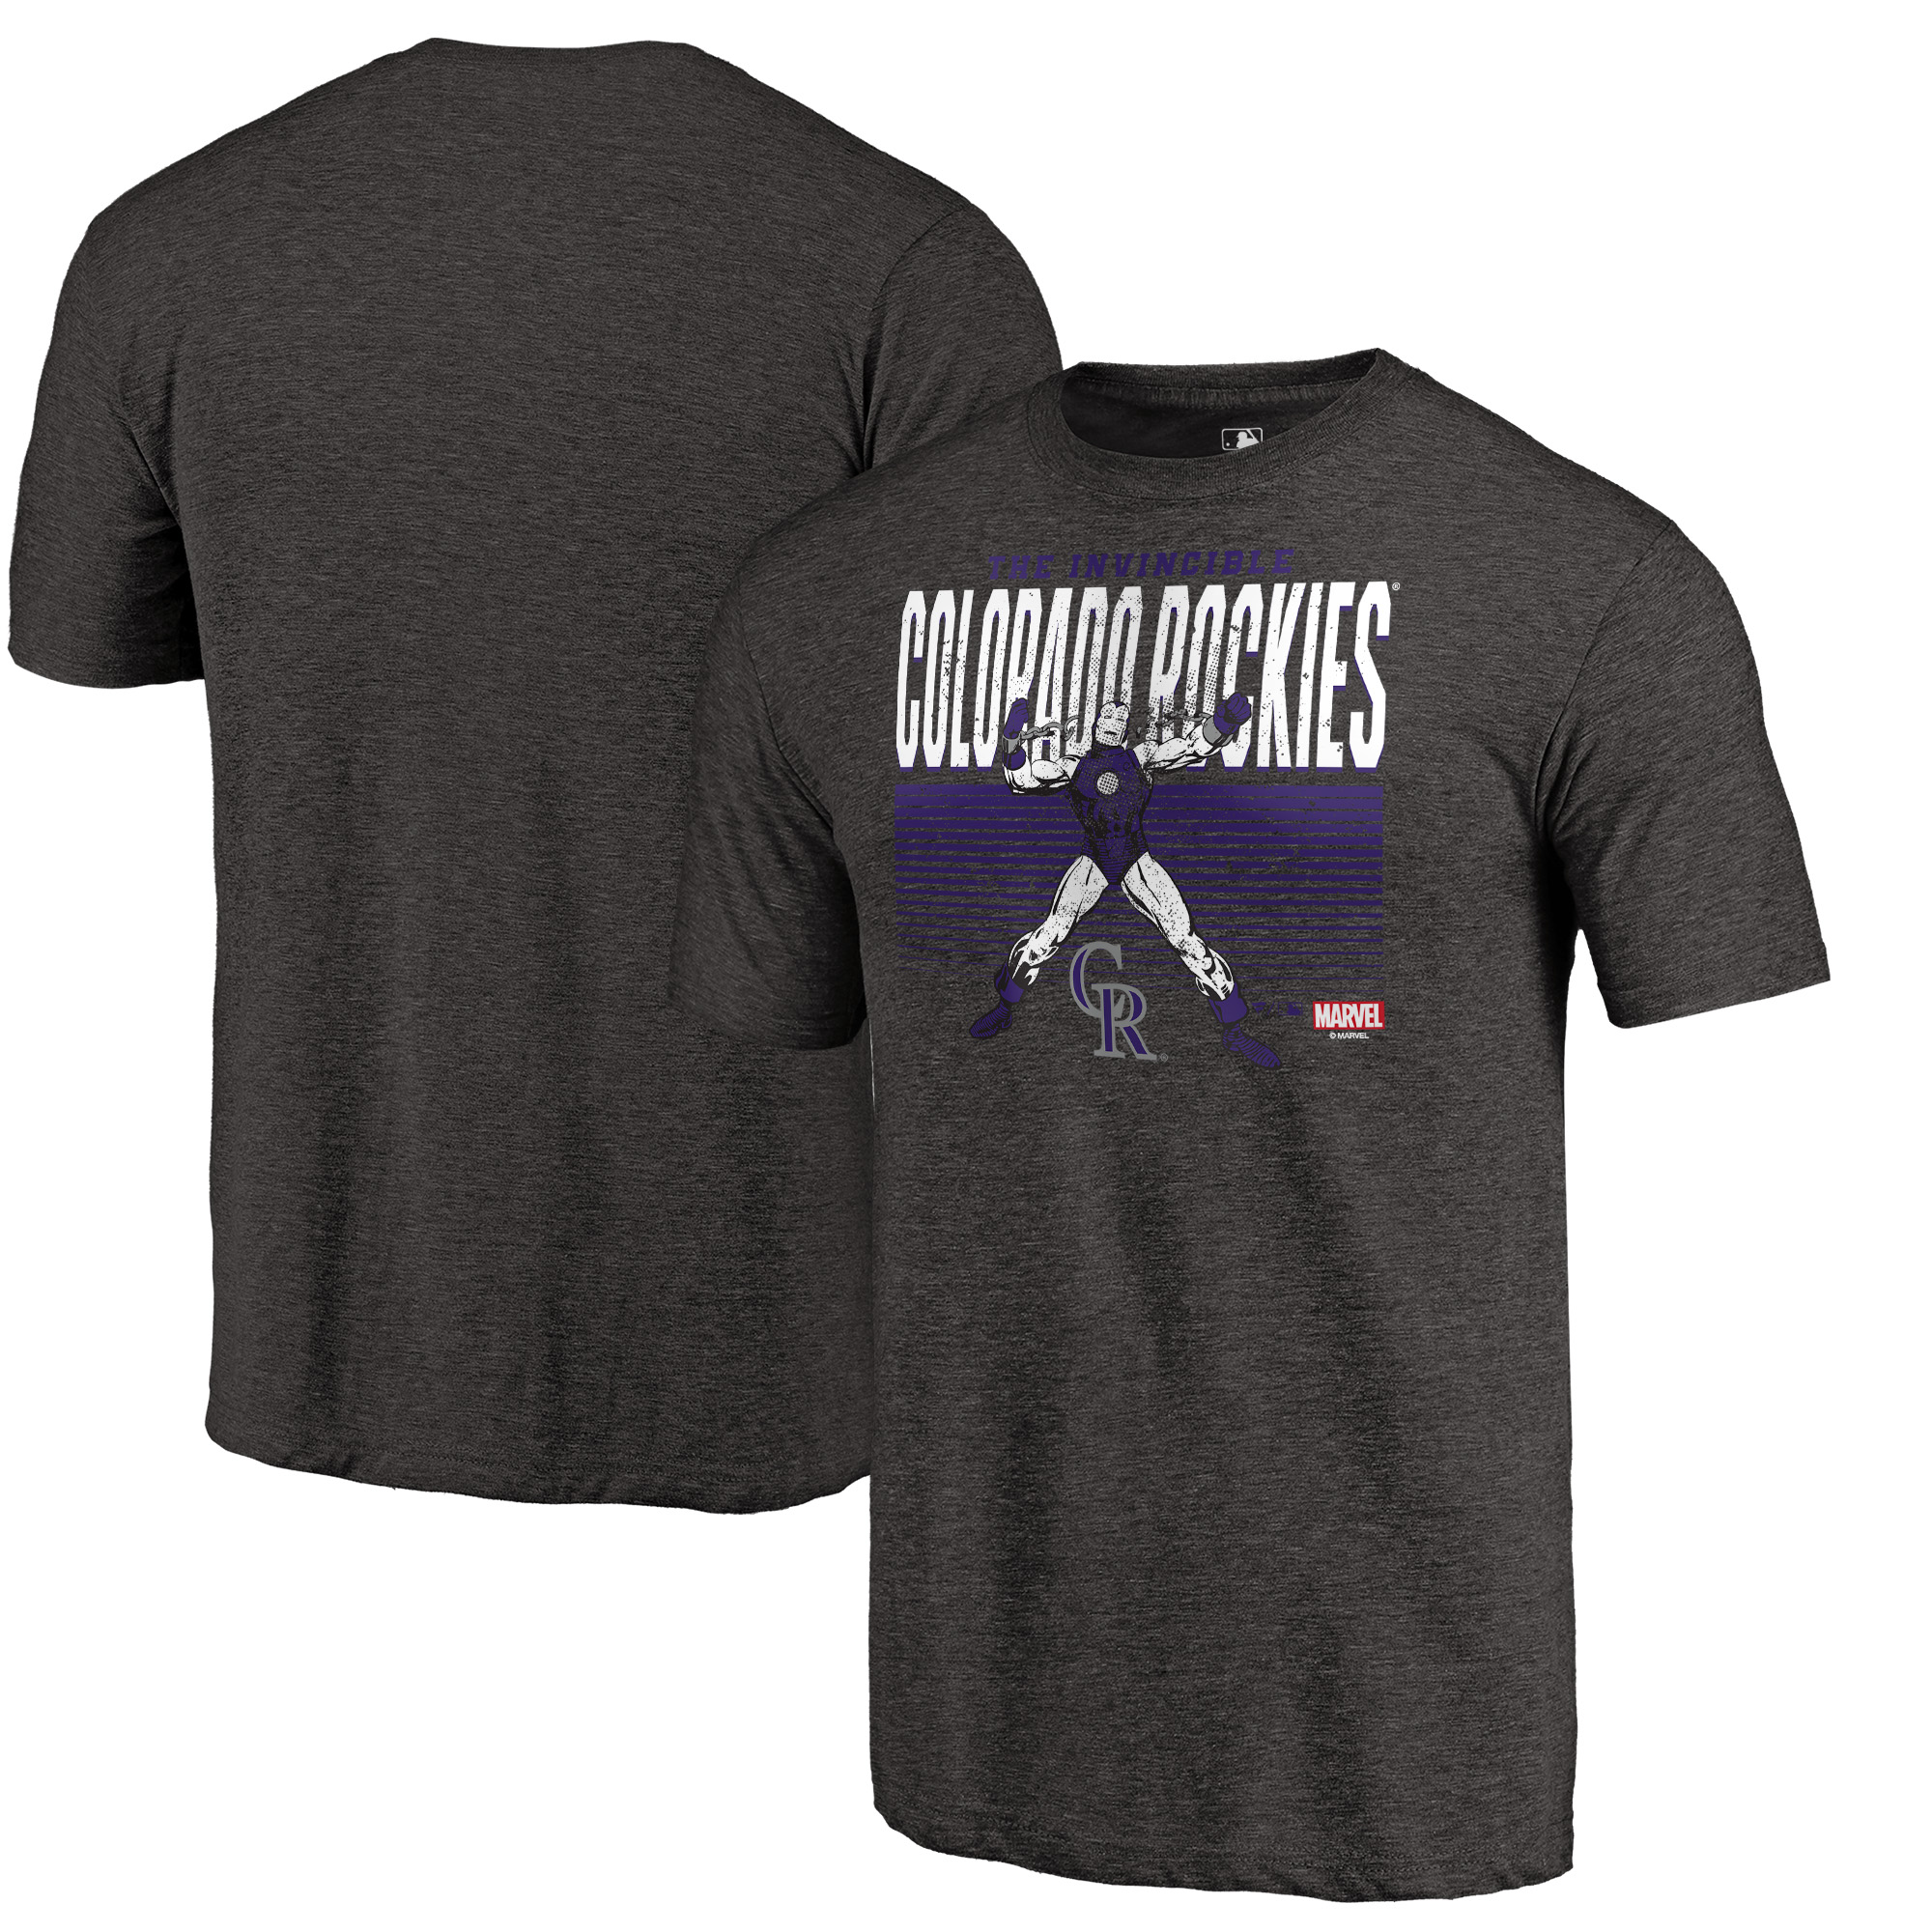 Colorado Rockies Fanatics Branded Marvel Iron Man Invincible Tri-Blend T-Shirt - Black